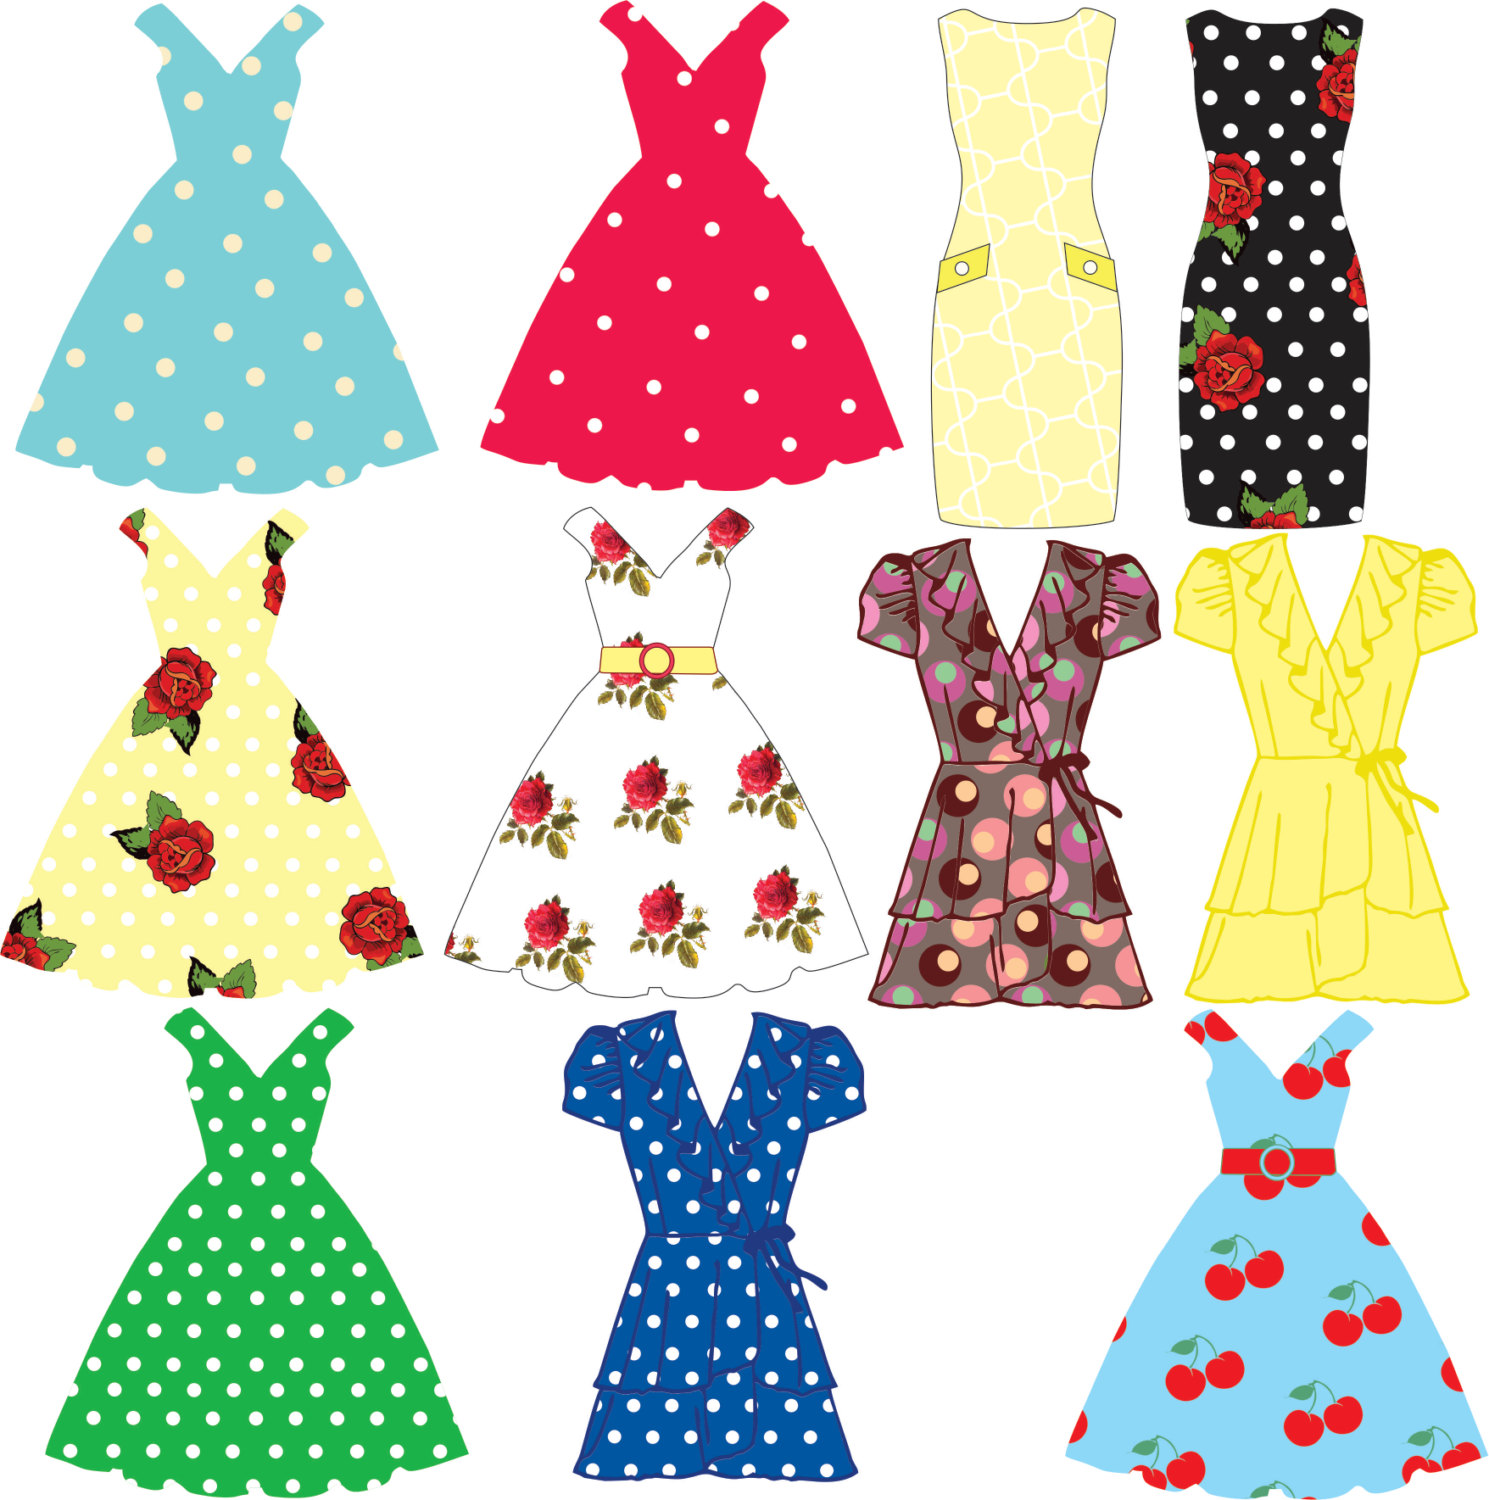 Clip Art Toddler Clothing Clipart - Clipart Suggest